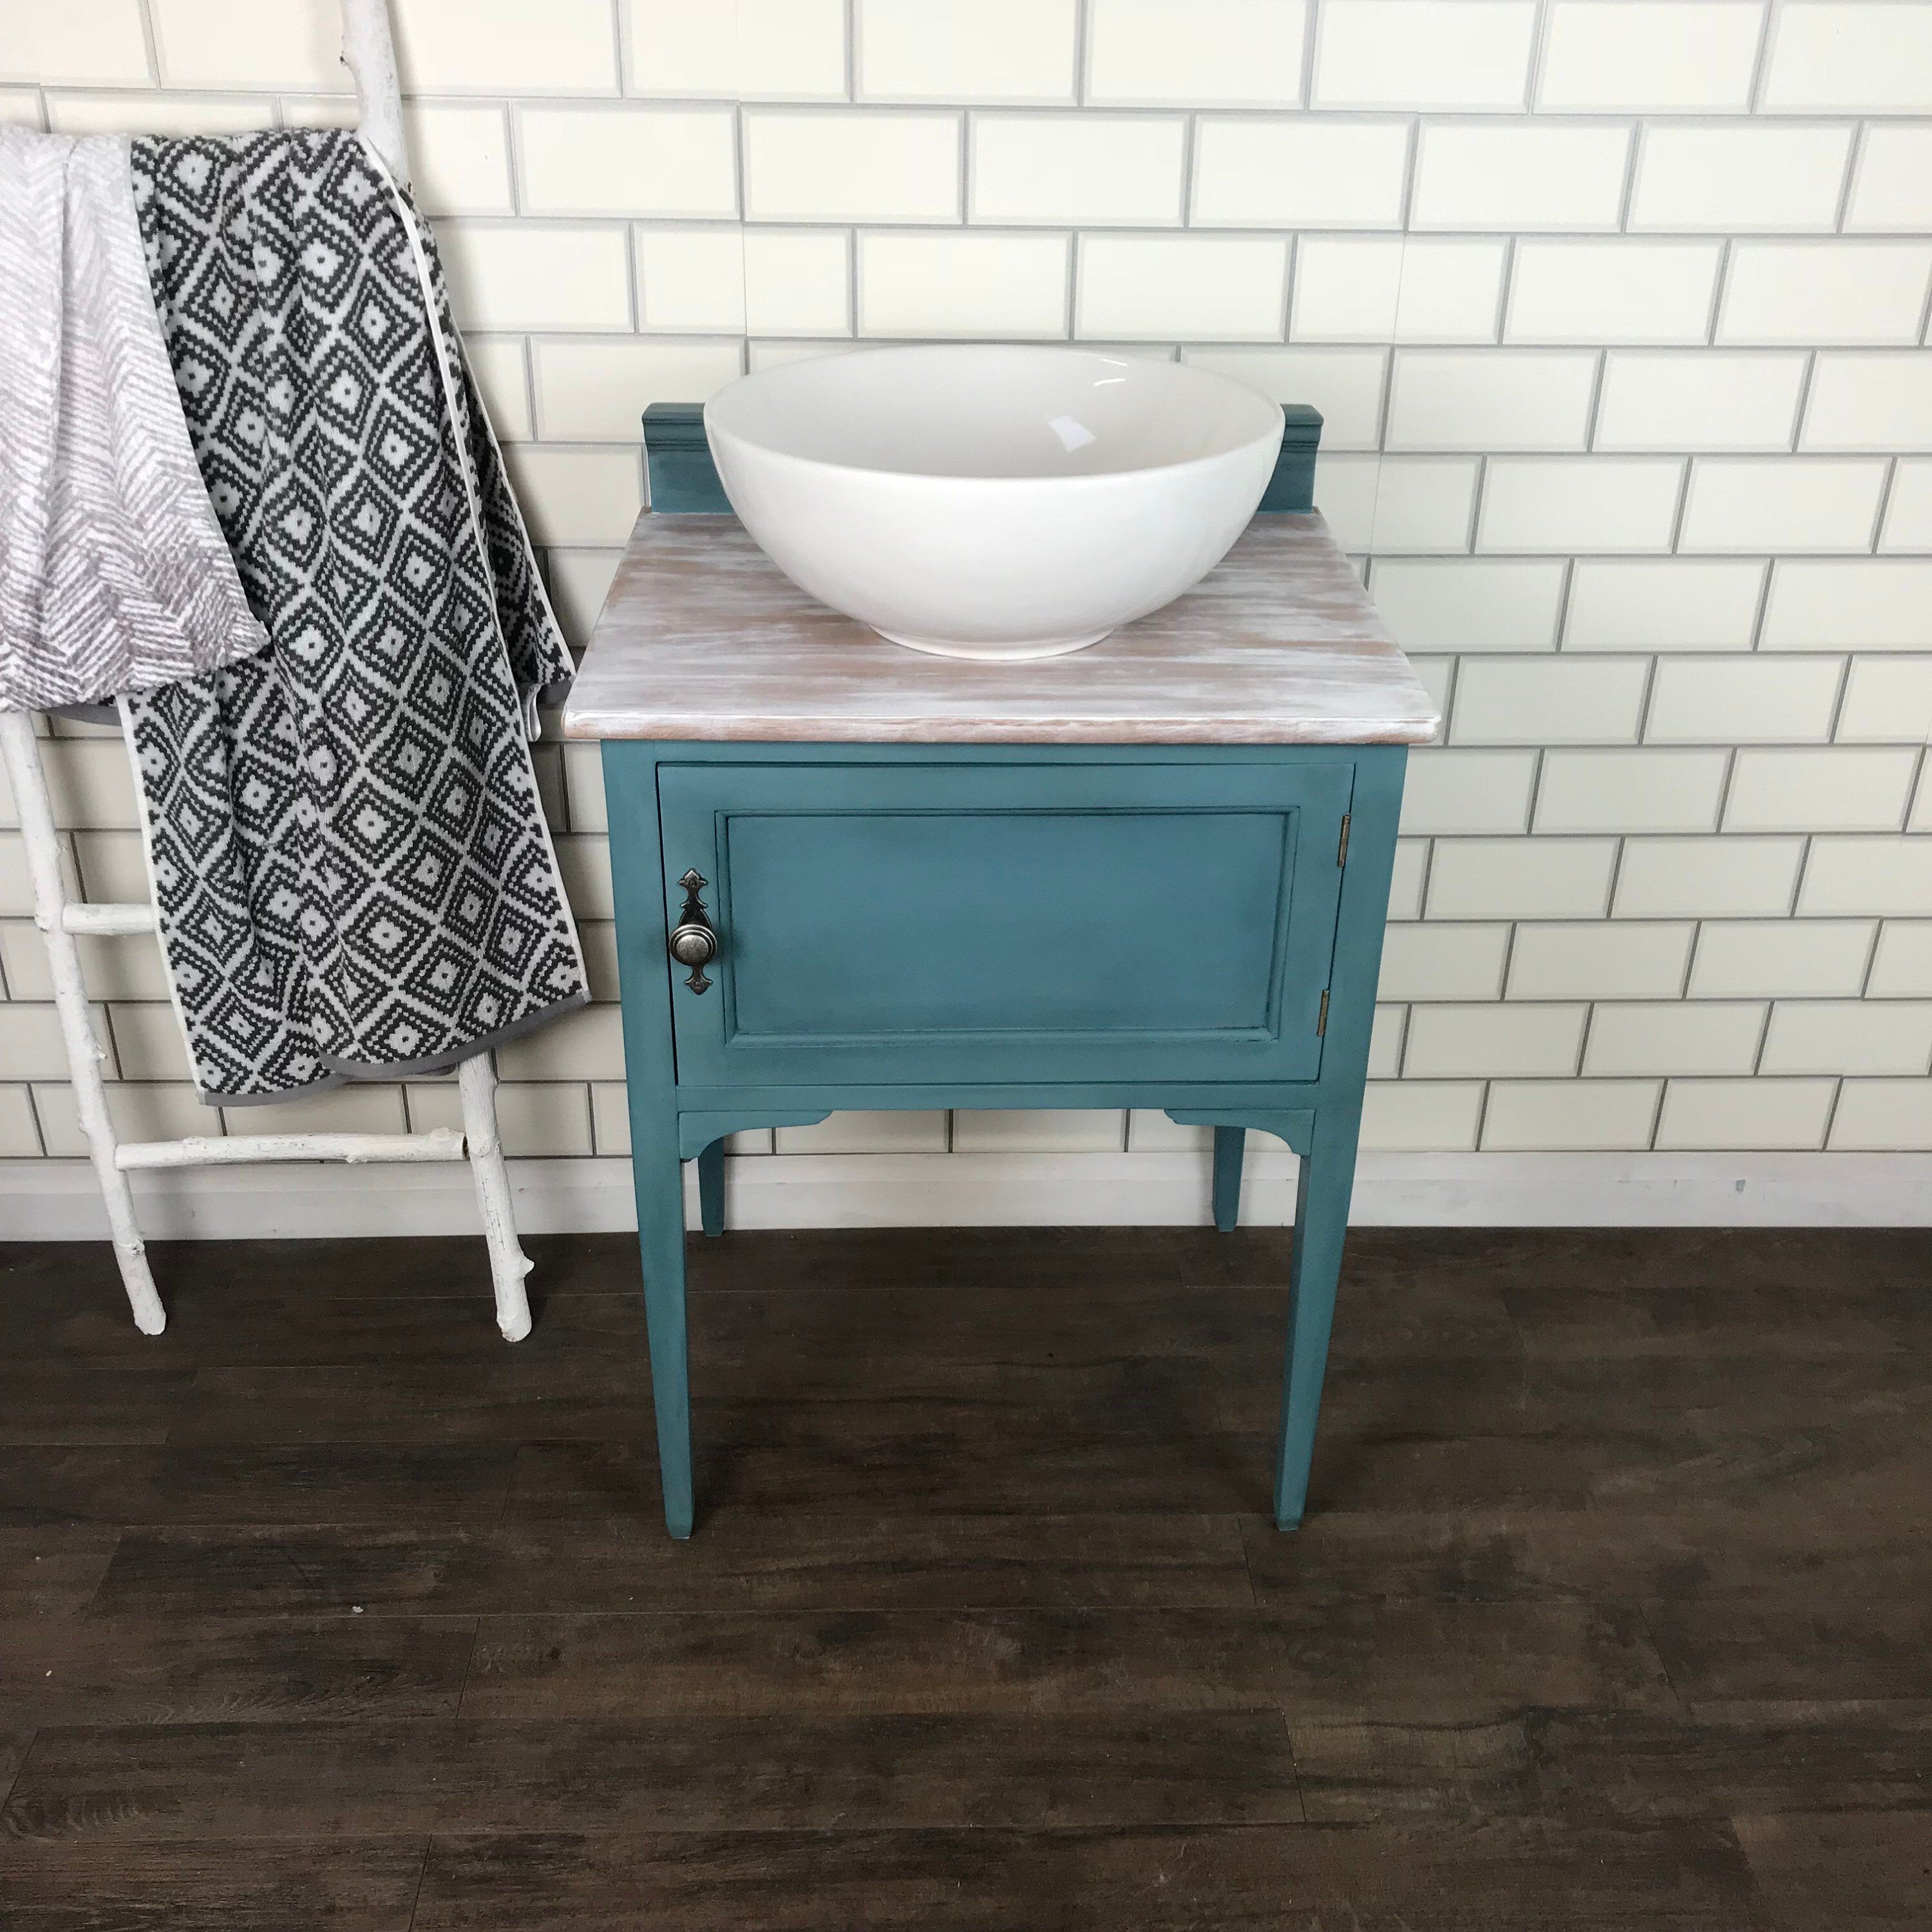 Teal Blue Vintage Small Bathroom Vanity Unit With Basin Vintage Bathroom Vanities Small Bathroom Vanities Vintage Bathrooms